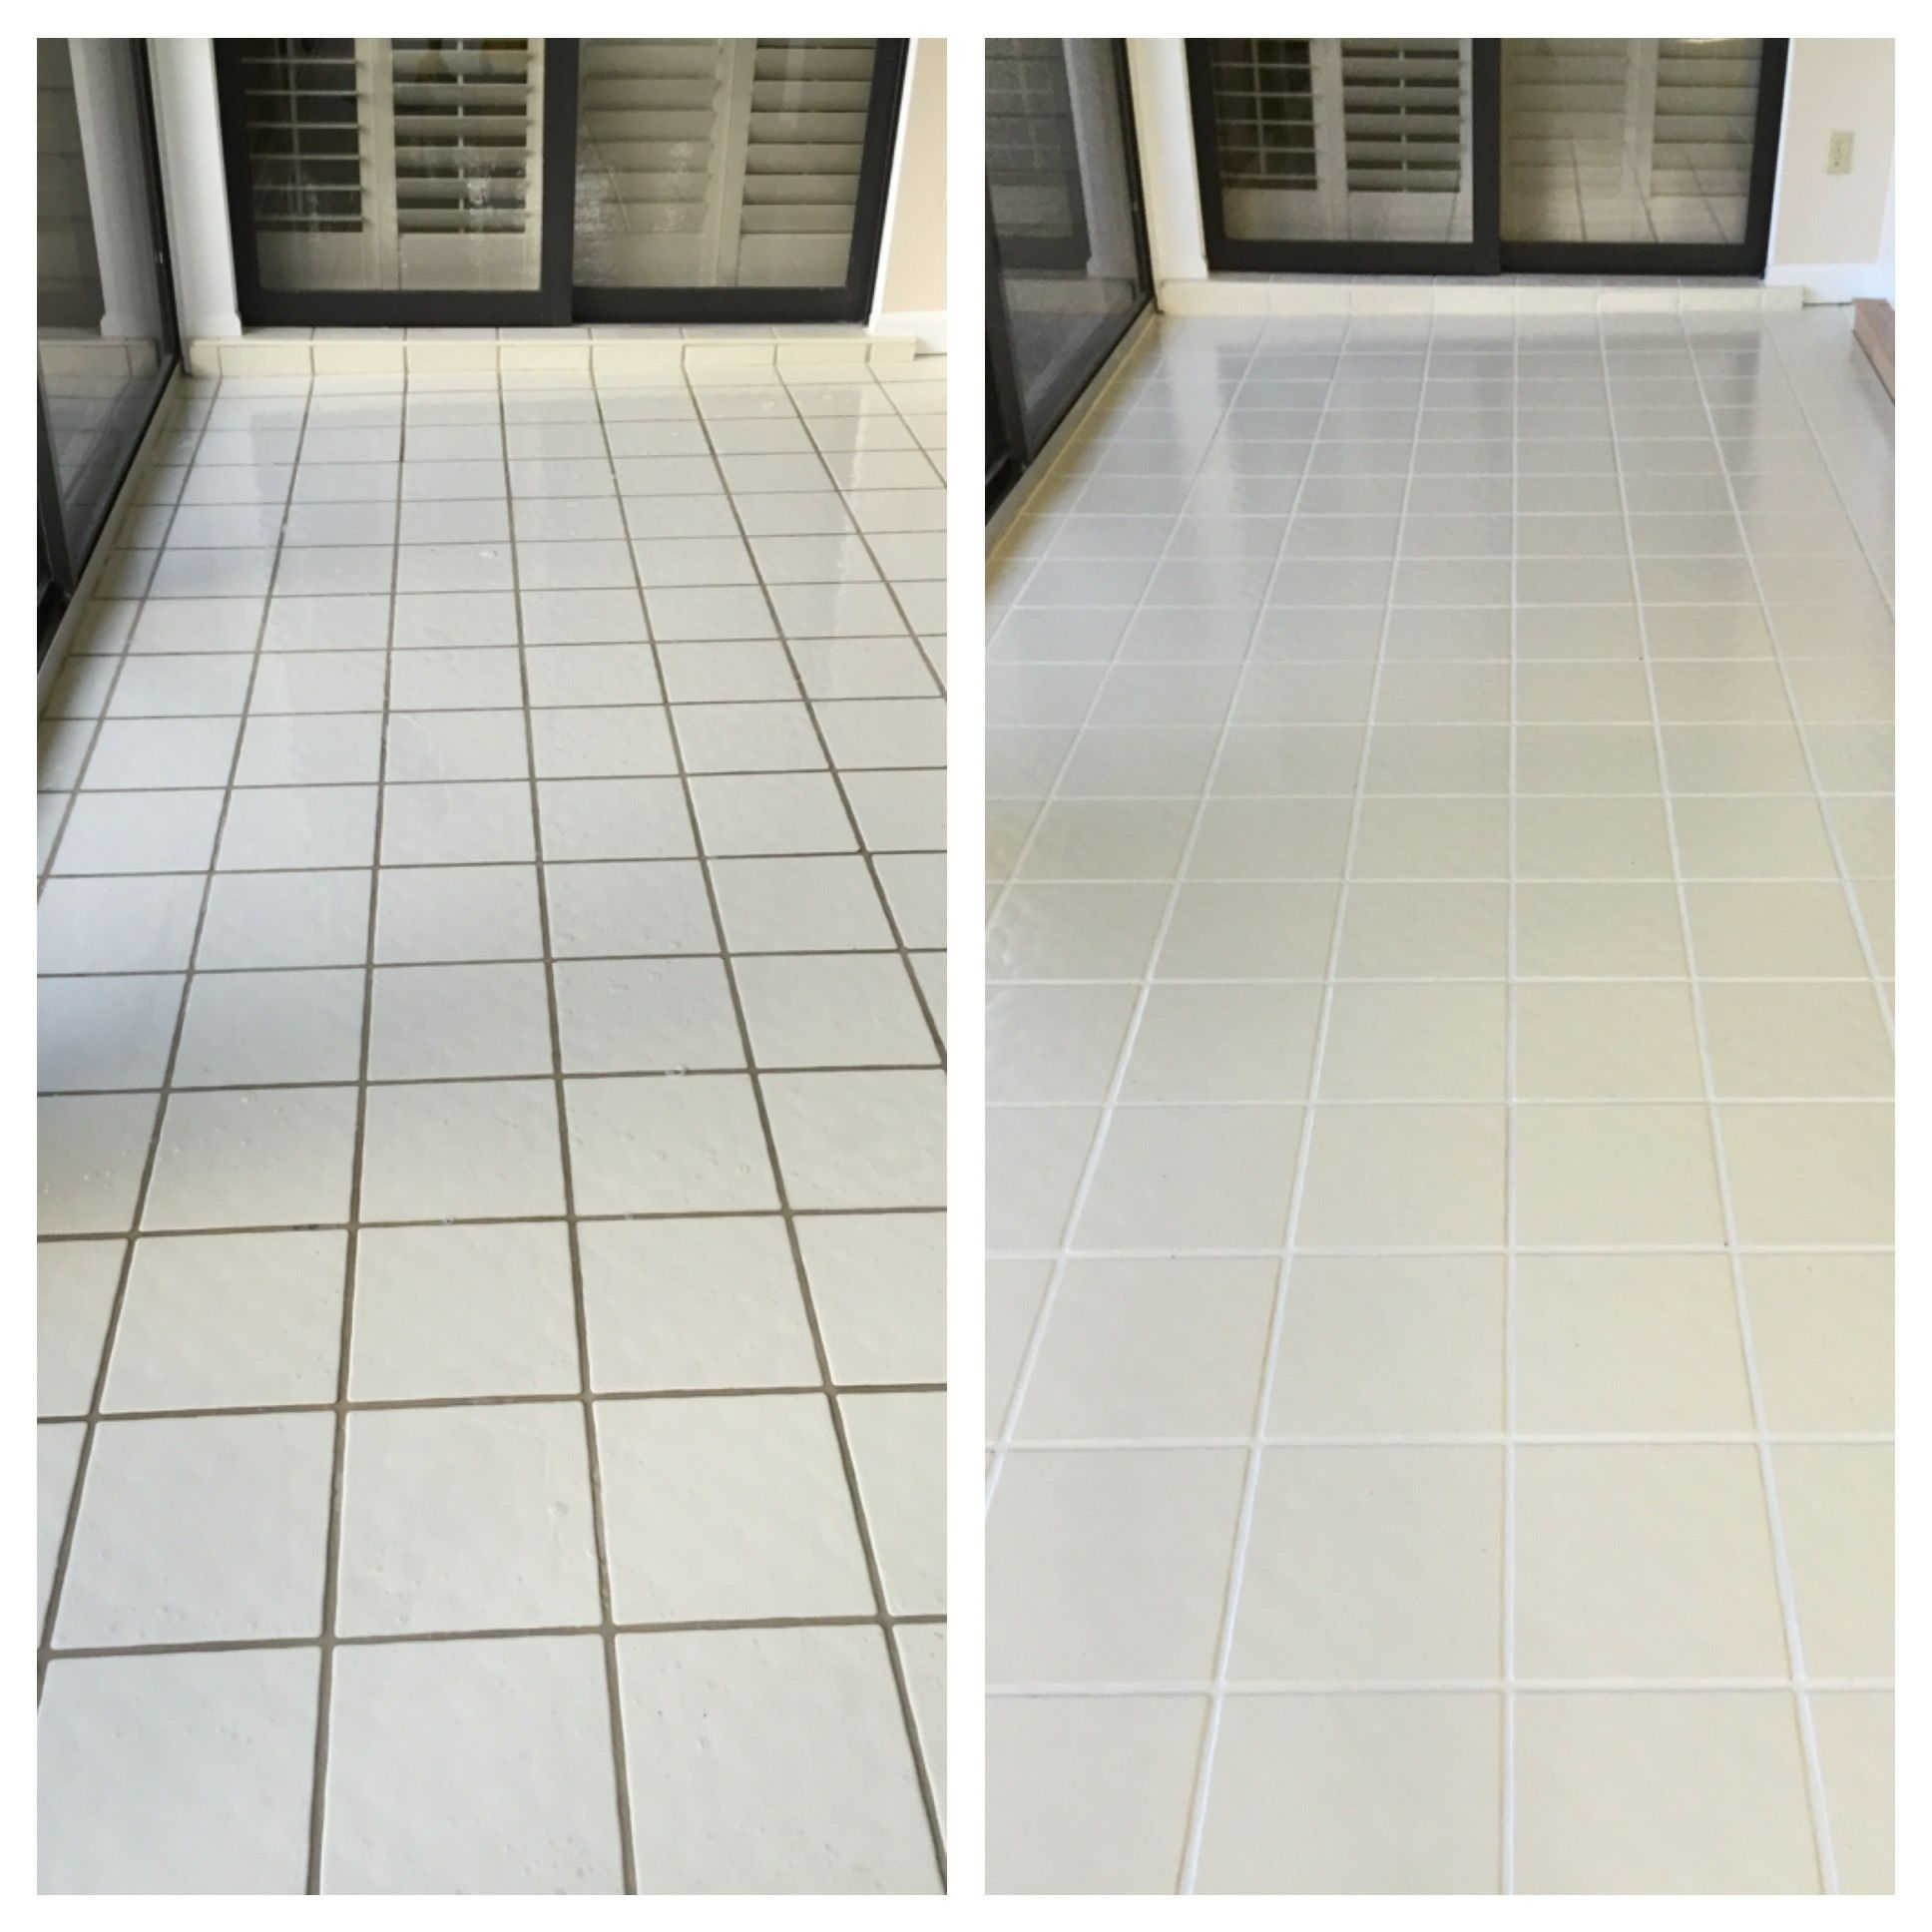 Before And After Grout Plus Clean And Color Seal Clean Tile